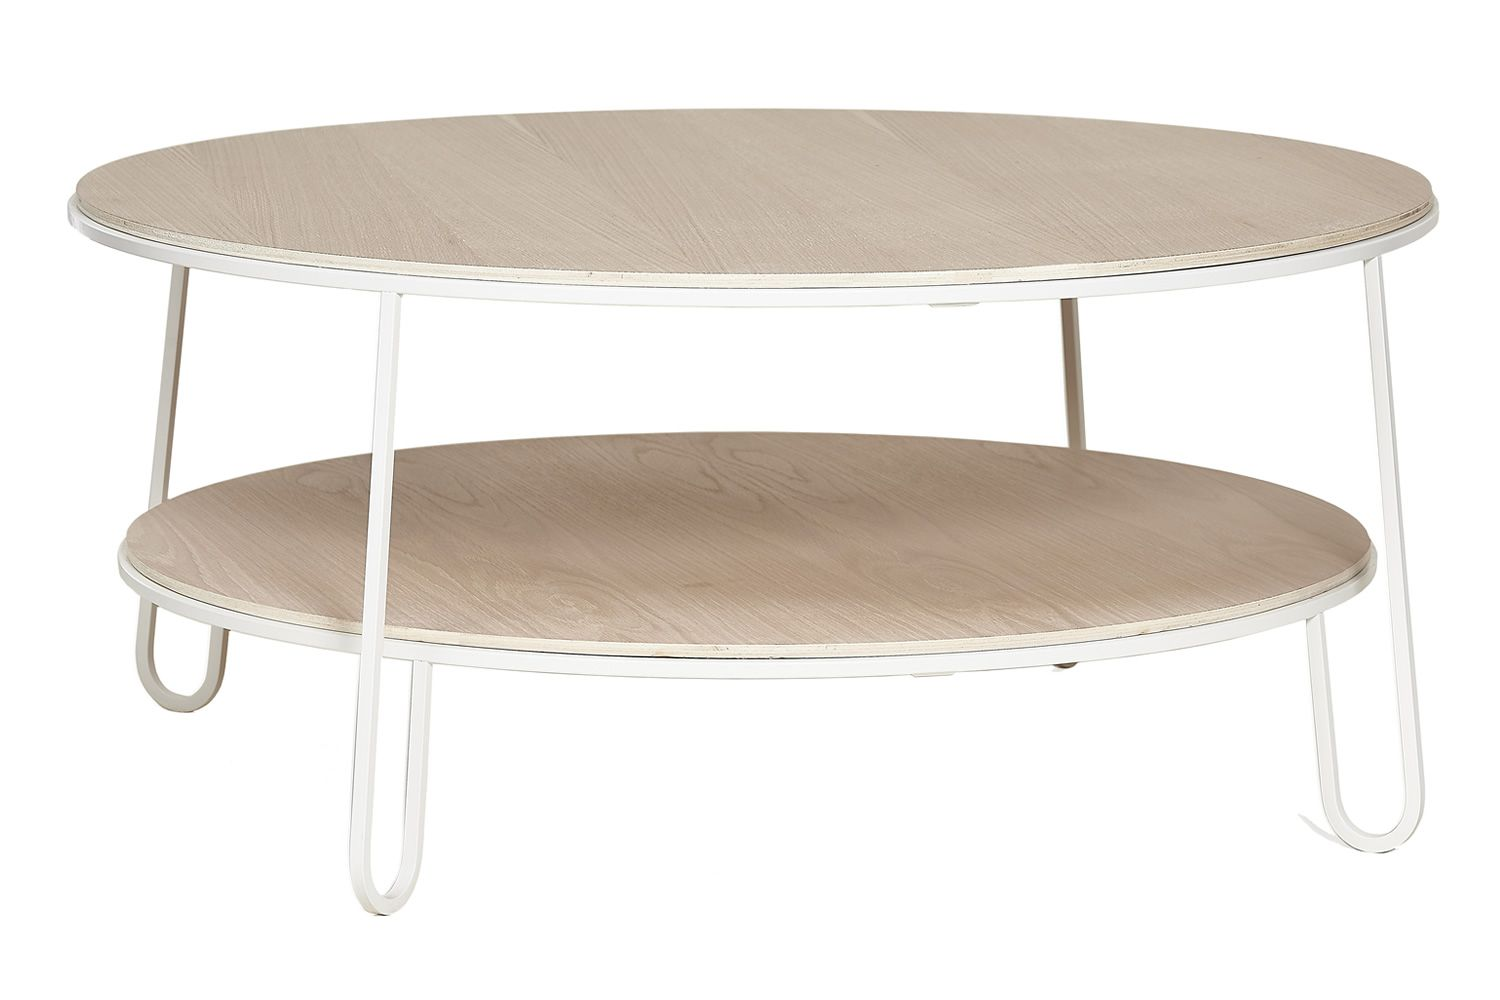 Table Basse Bois Metal Ronde Table Basse Ronde Bois Et Metal Blanc Boutique Gain De Place Fr